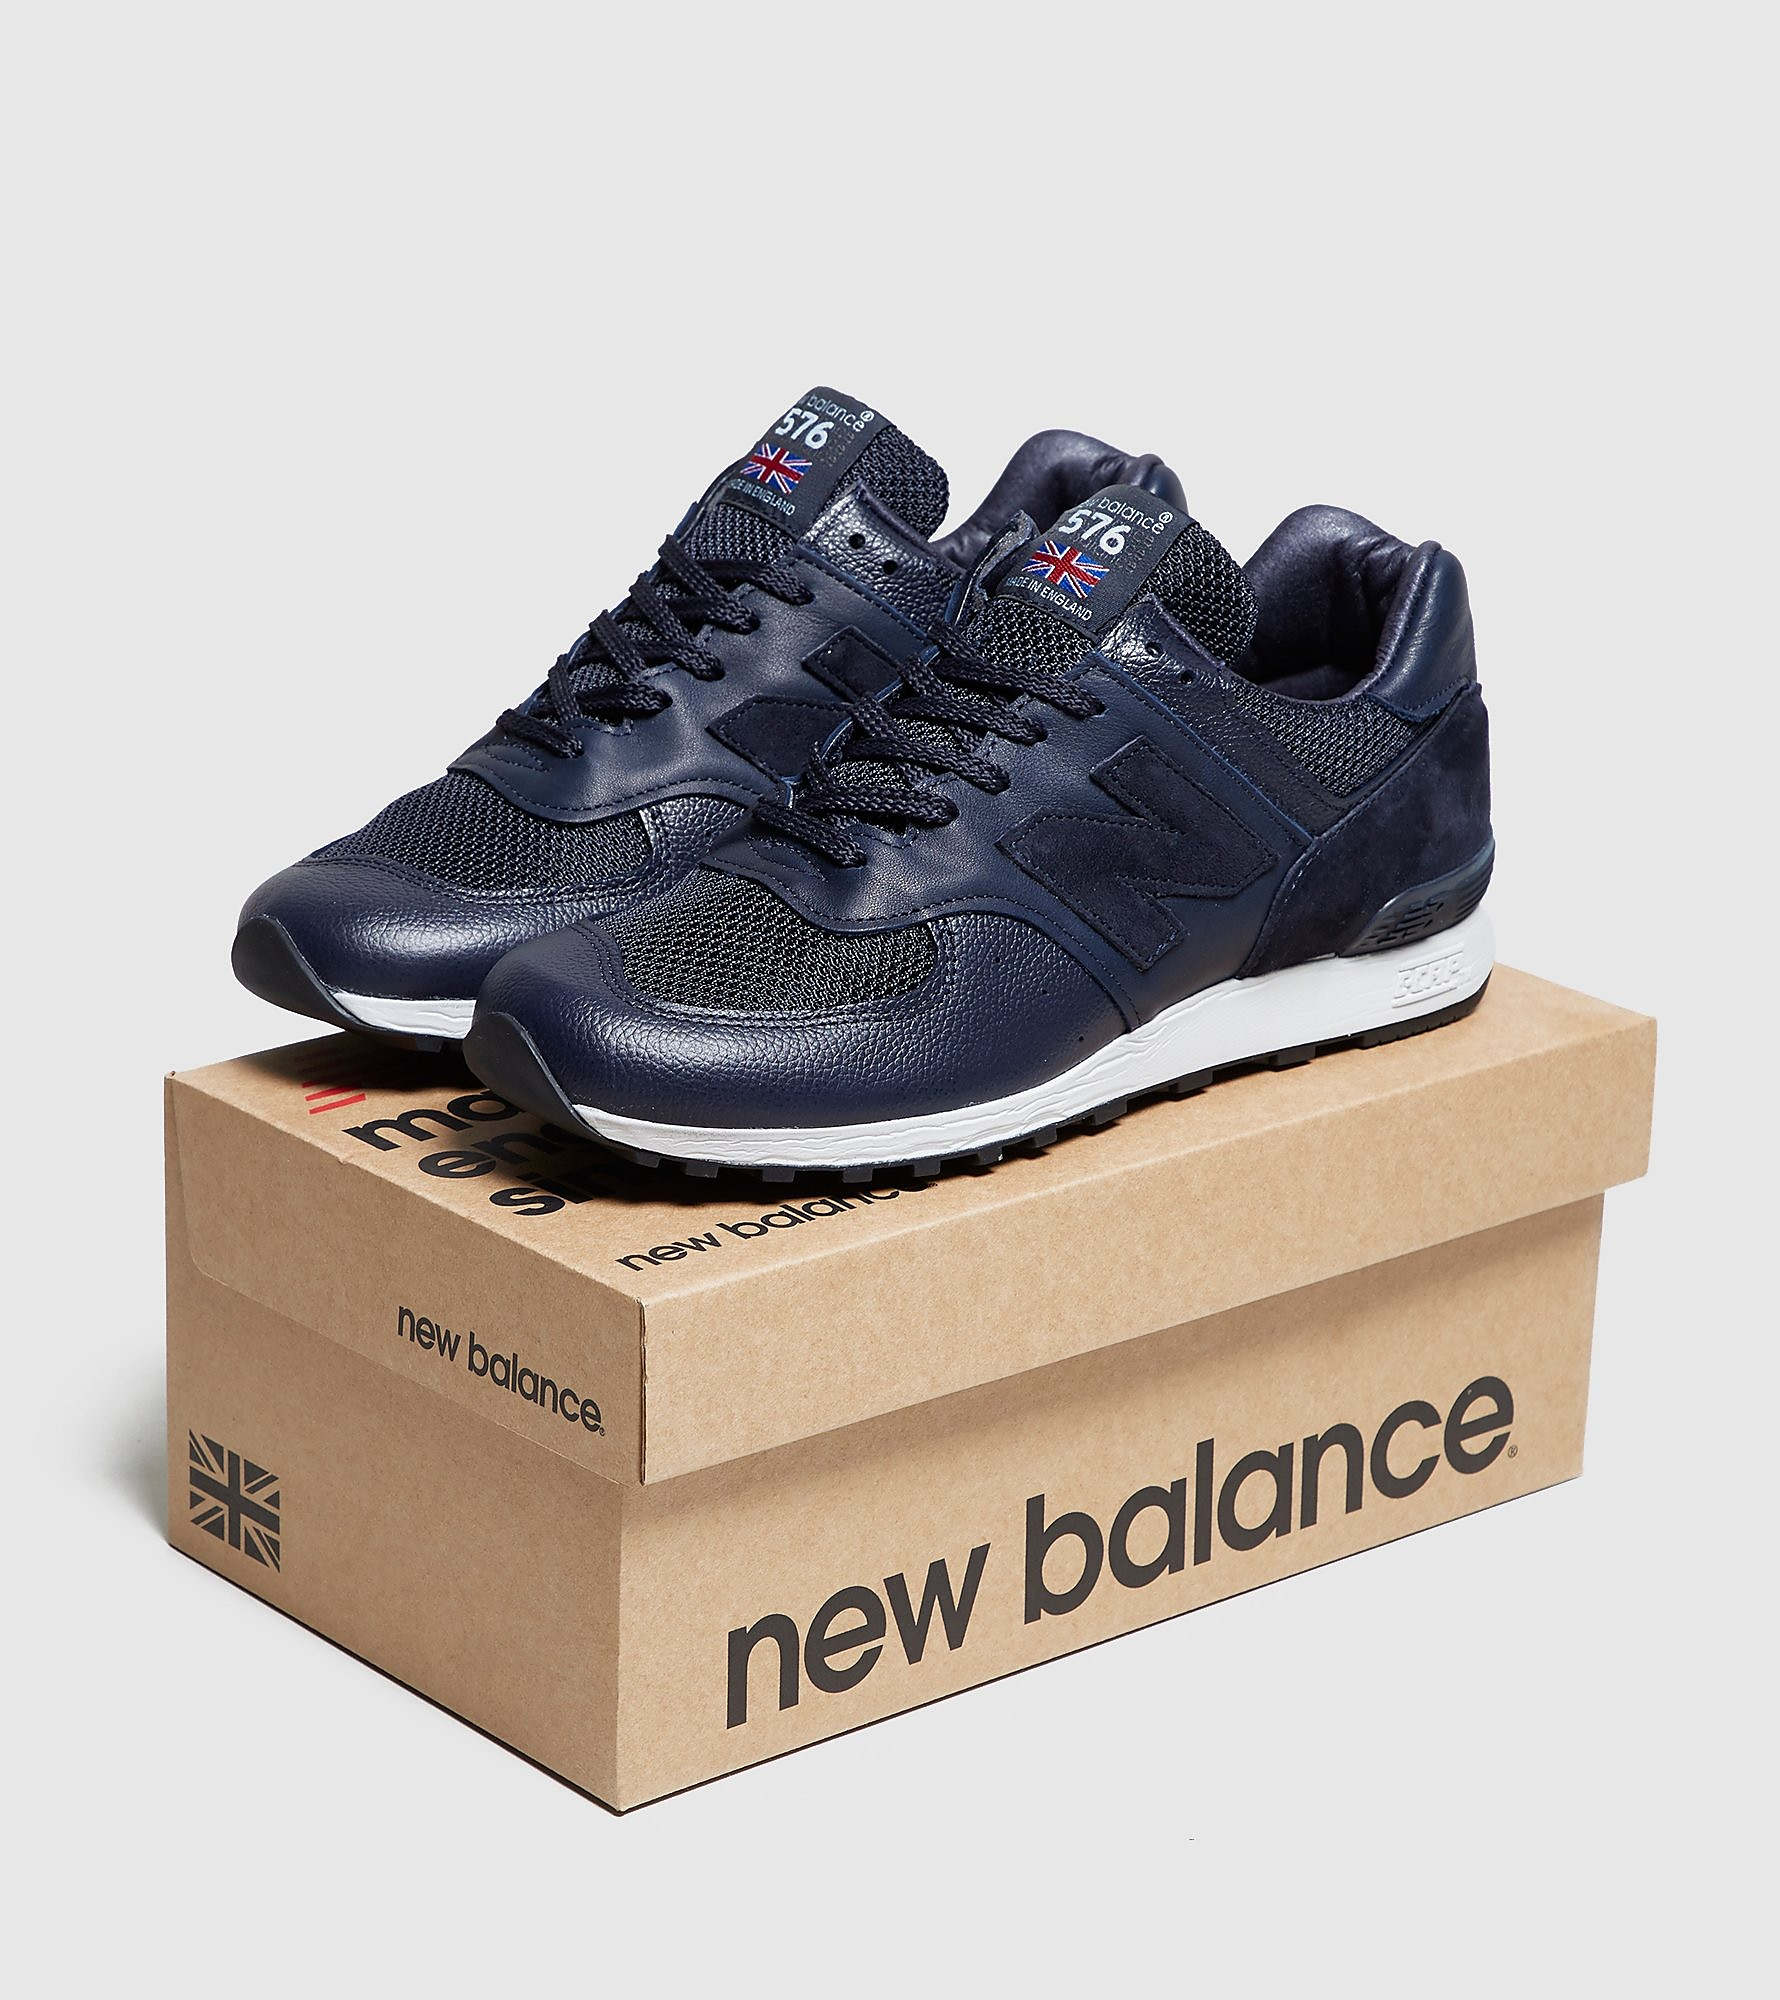 New Balance 576 Premium Leather